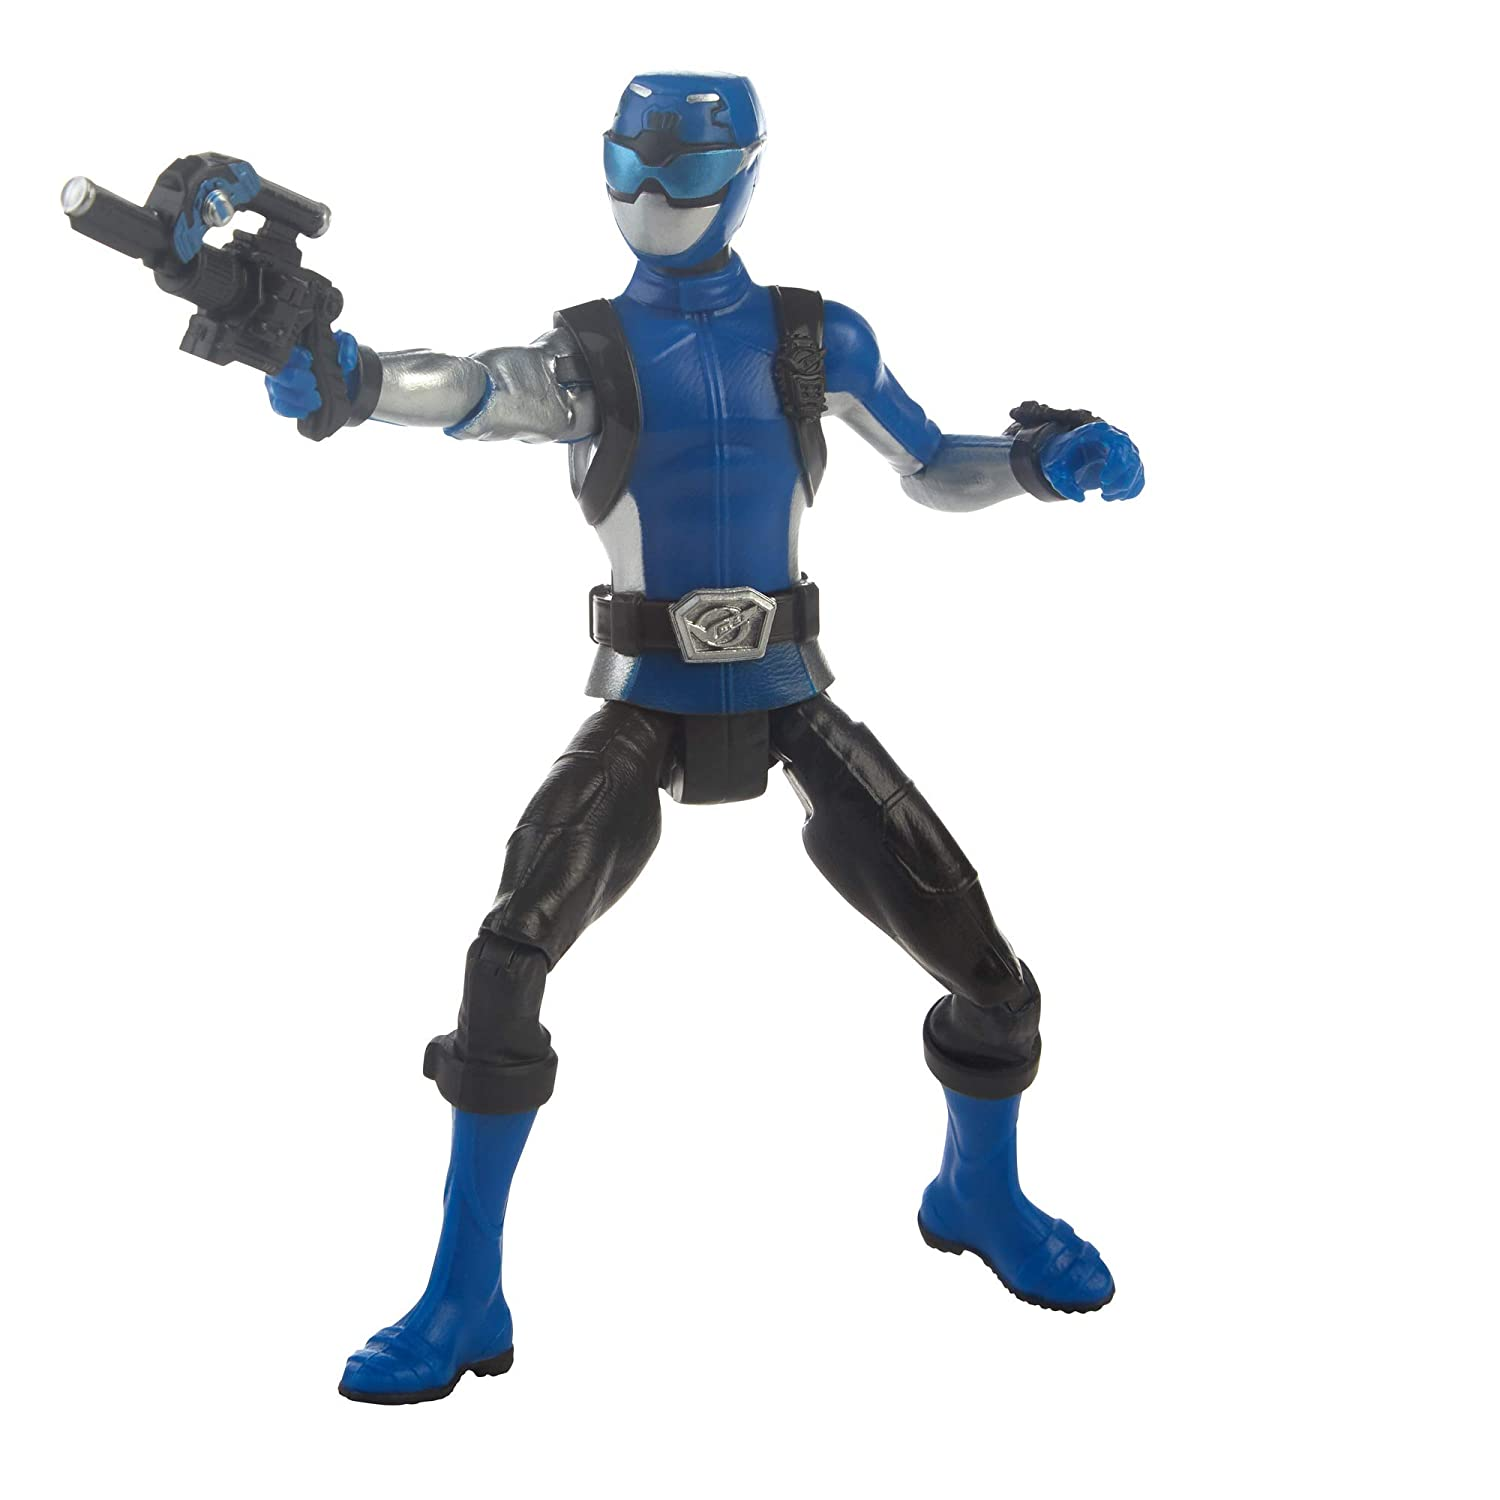 Hasbro Power Rangers Beast Morphers Blue Ranger 6 Action Figure Toy Inspired by The Power Rangers TV Show